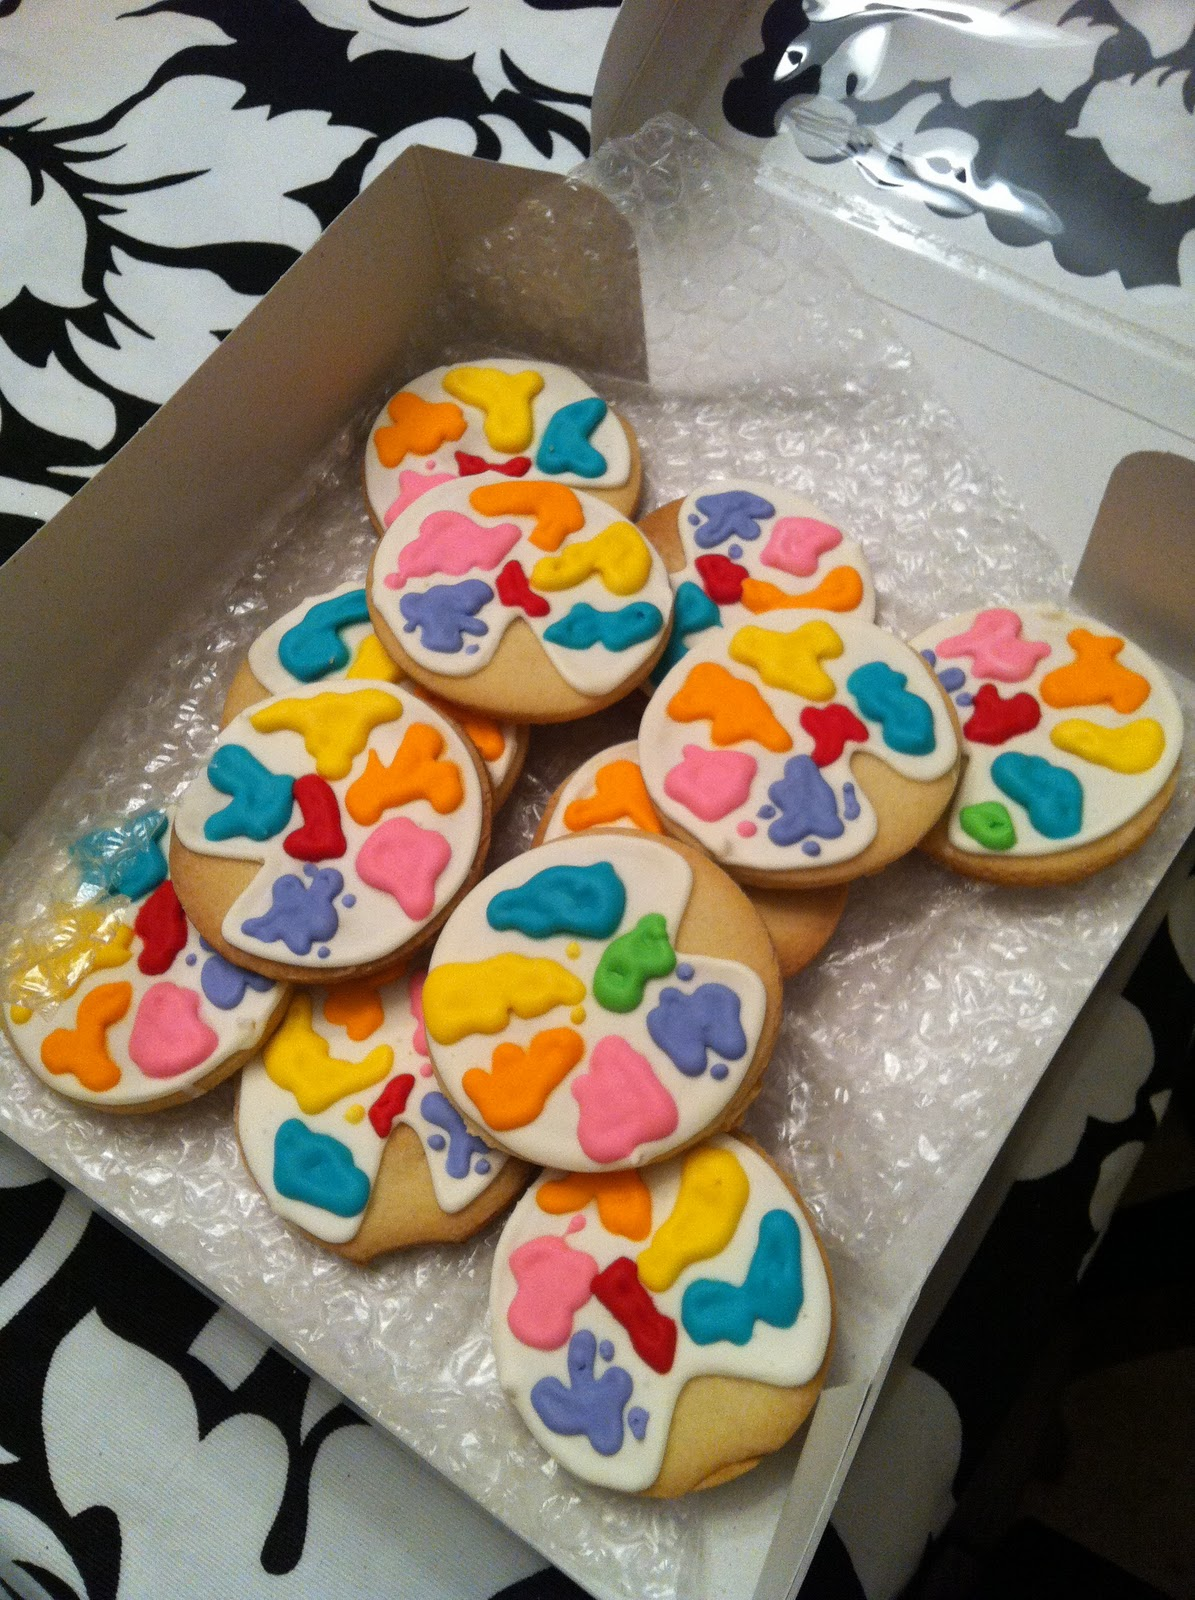 Creative cookies creative consultants for Creative consulting firms nyc